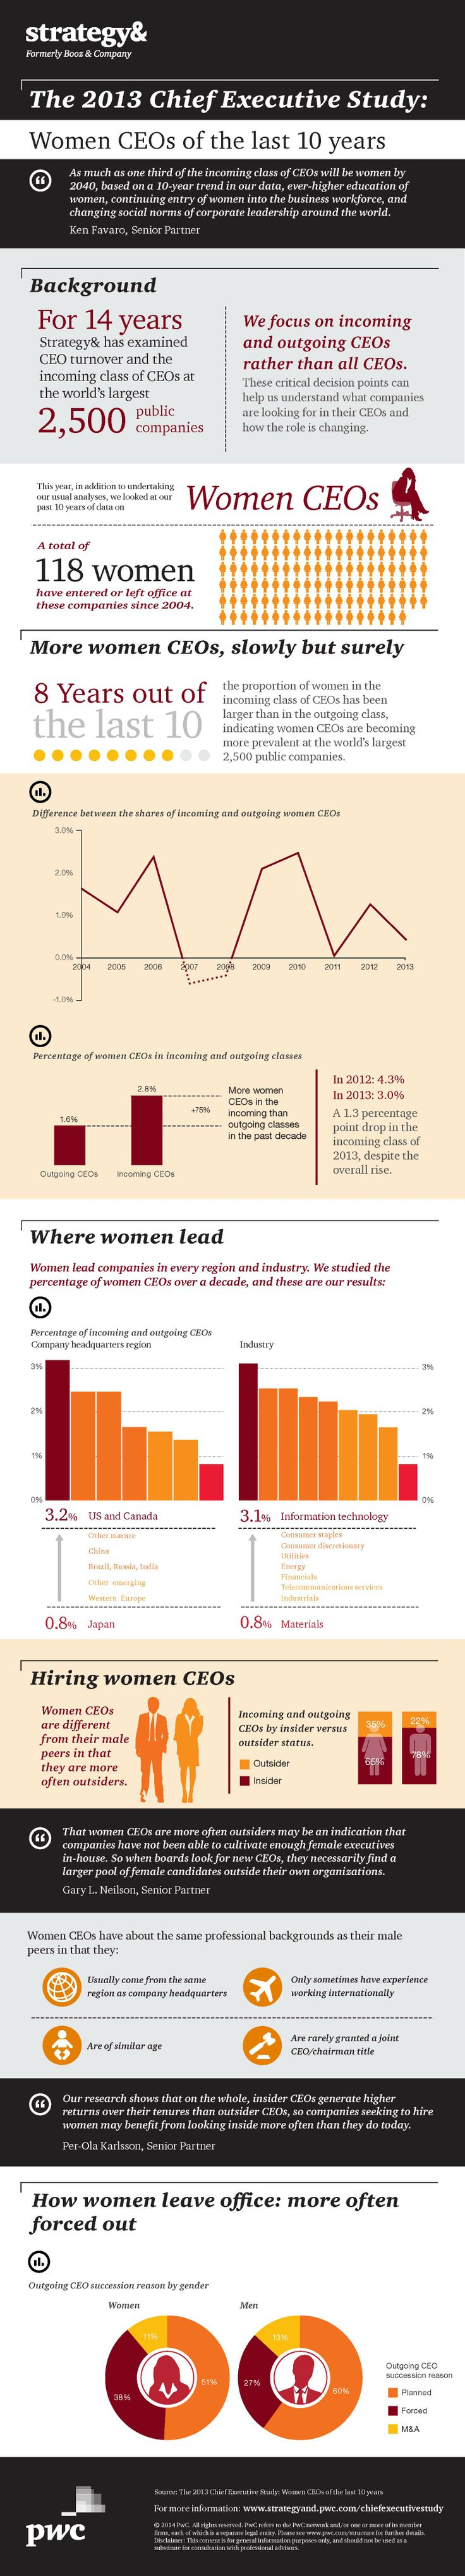 "Infographie Startegy& ""Chief Executive Study"" sur les femmes dirigeantes (2014). http://pwc.to/1laNcy5"